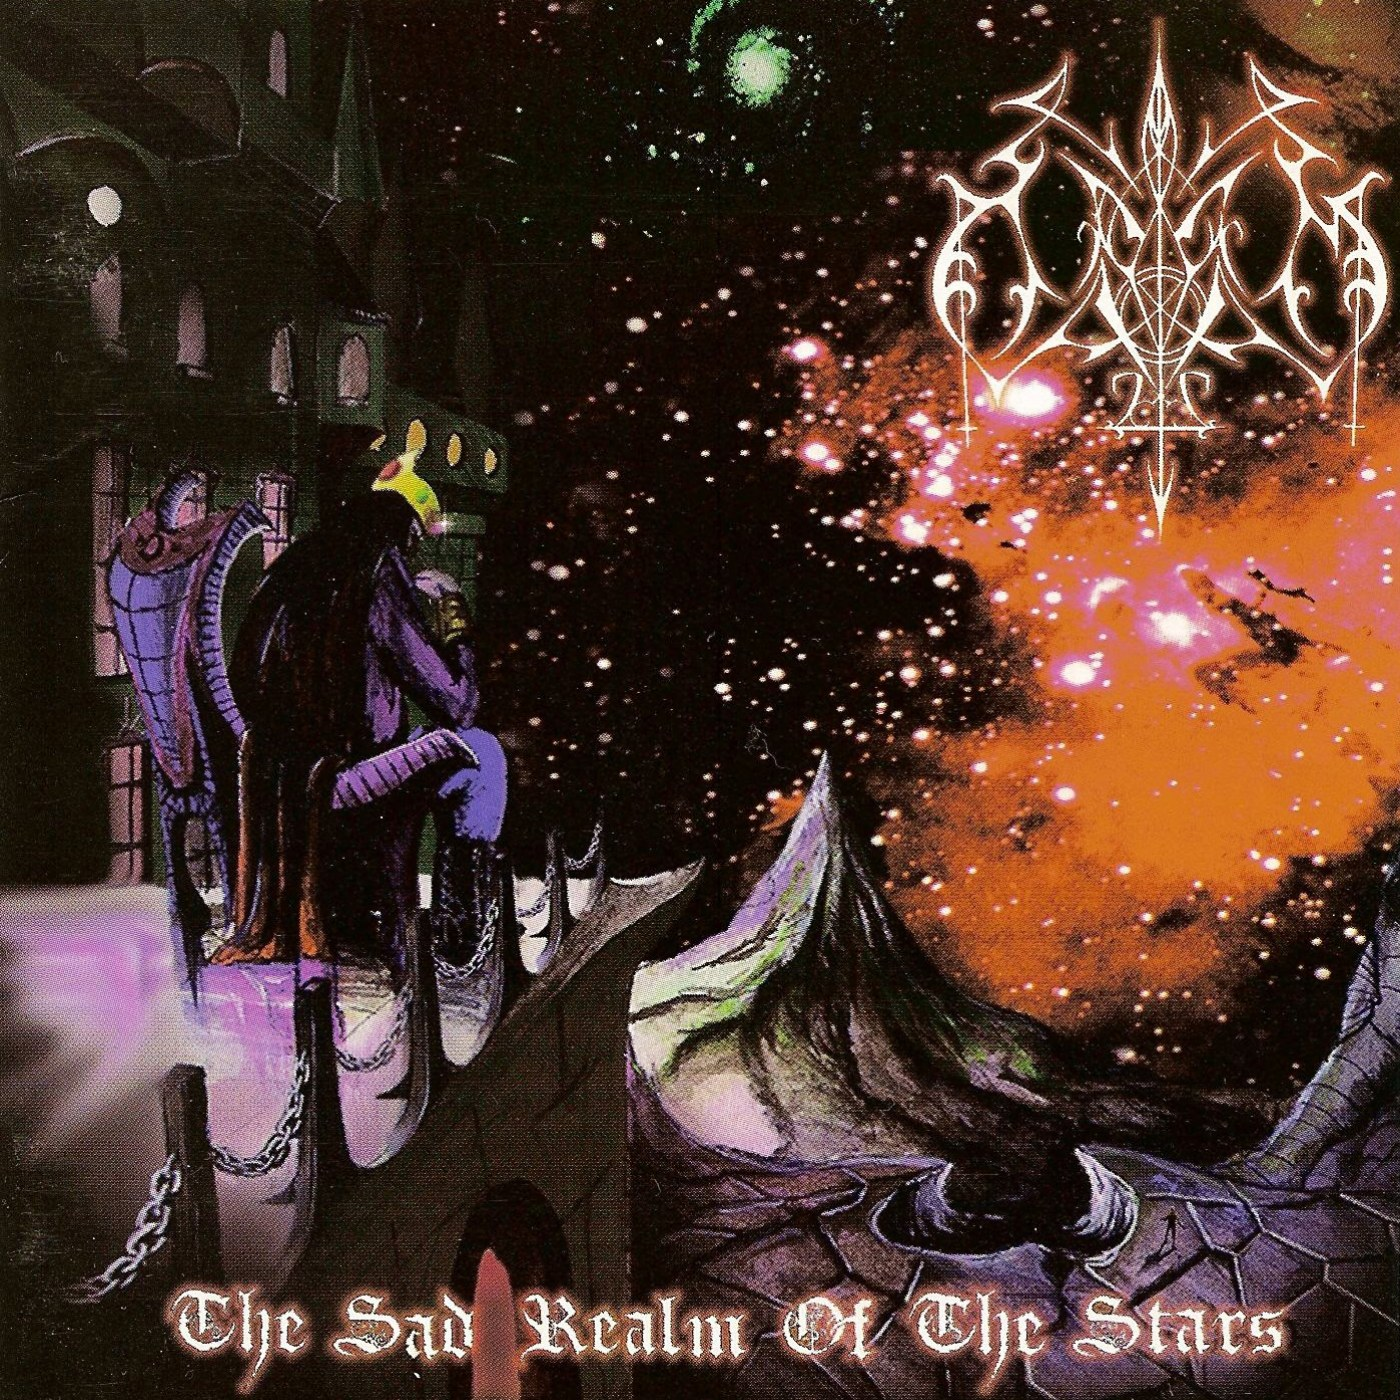 Review for Odium (NOR) - The Sad Realm of the Stars